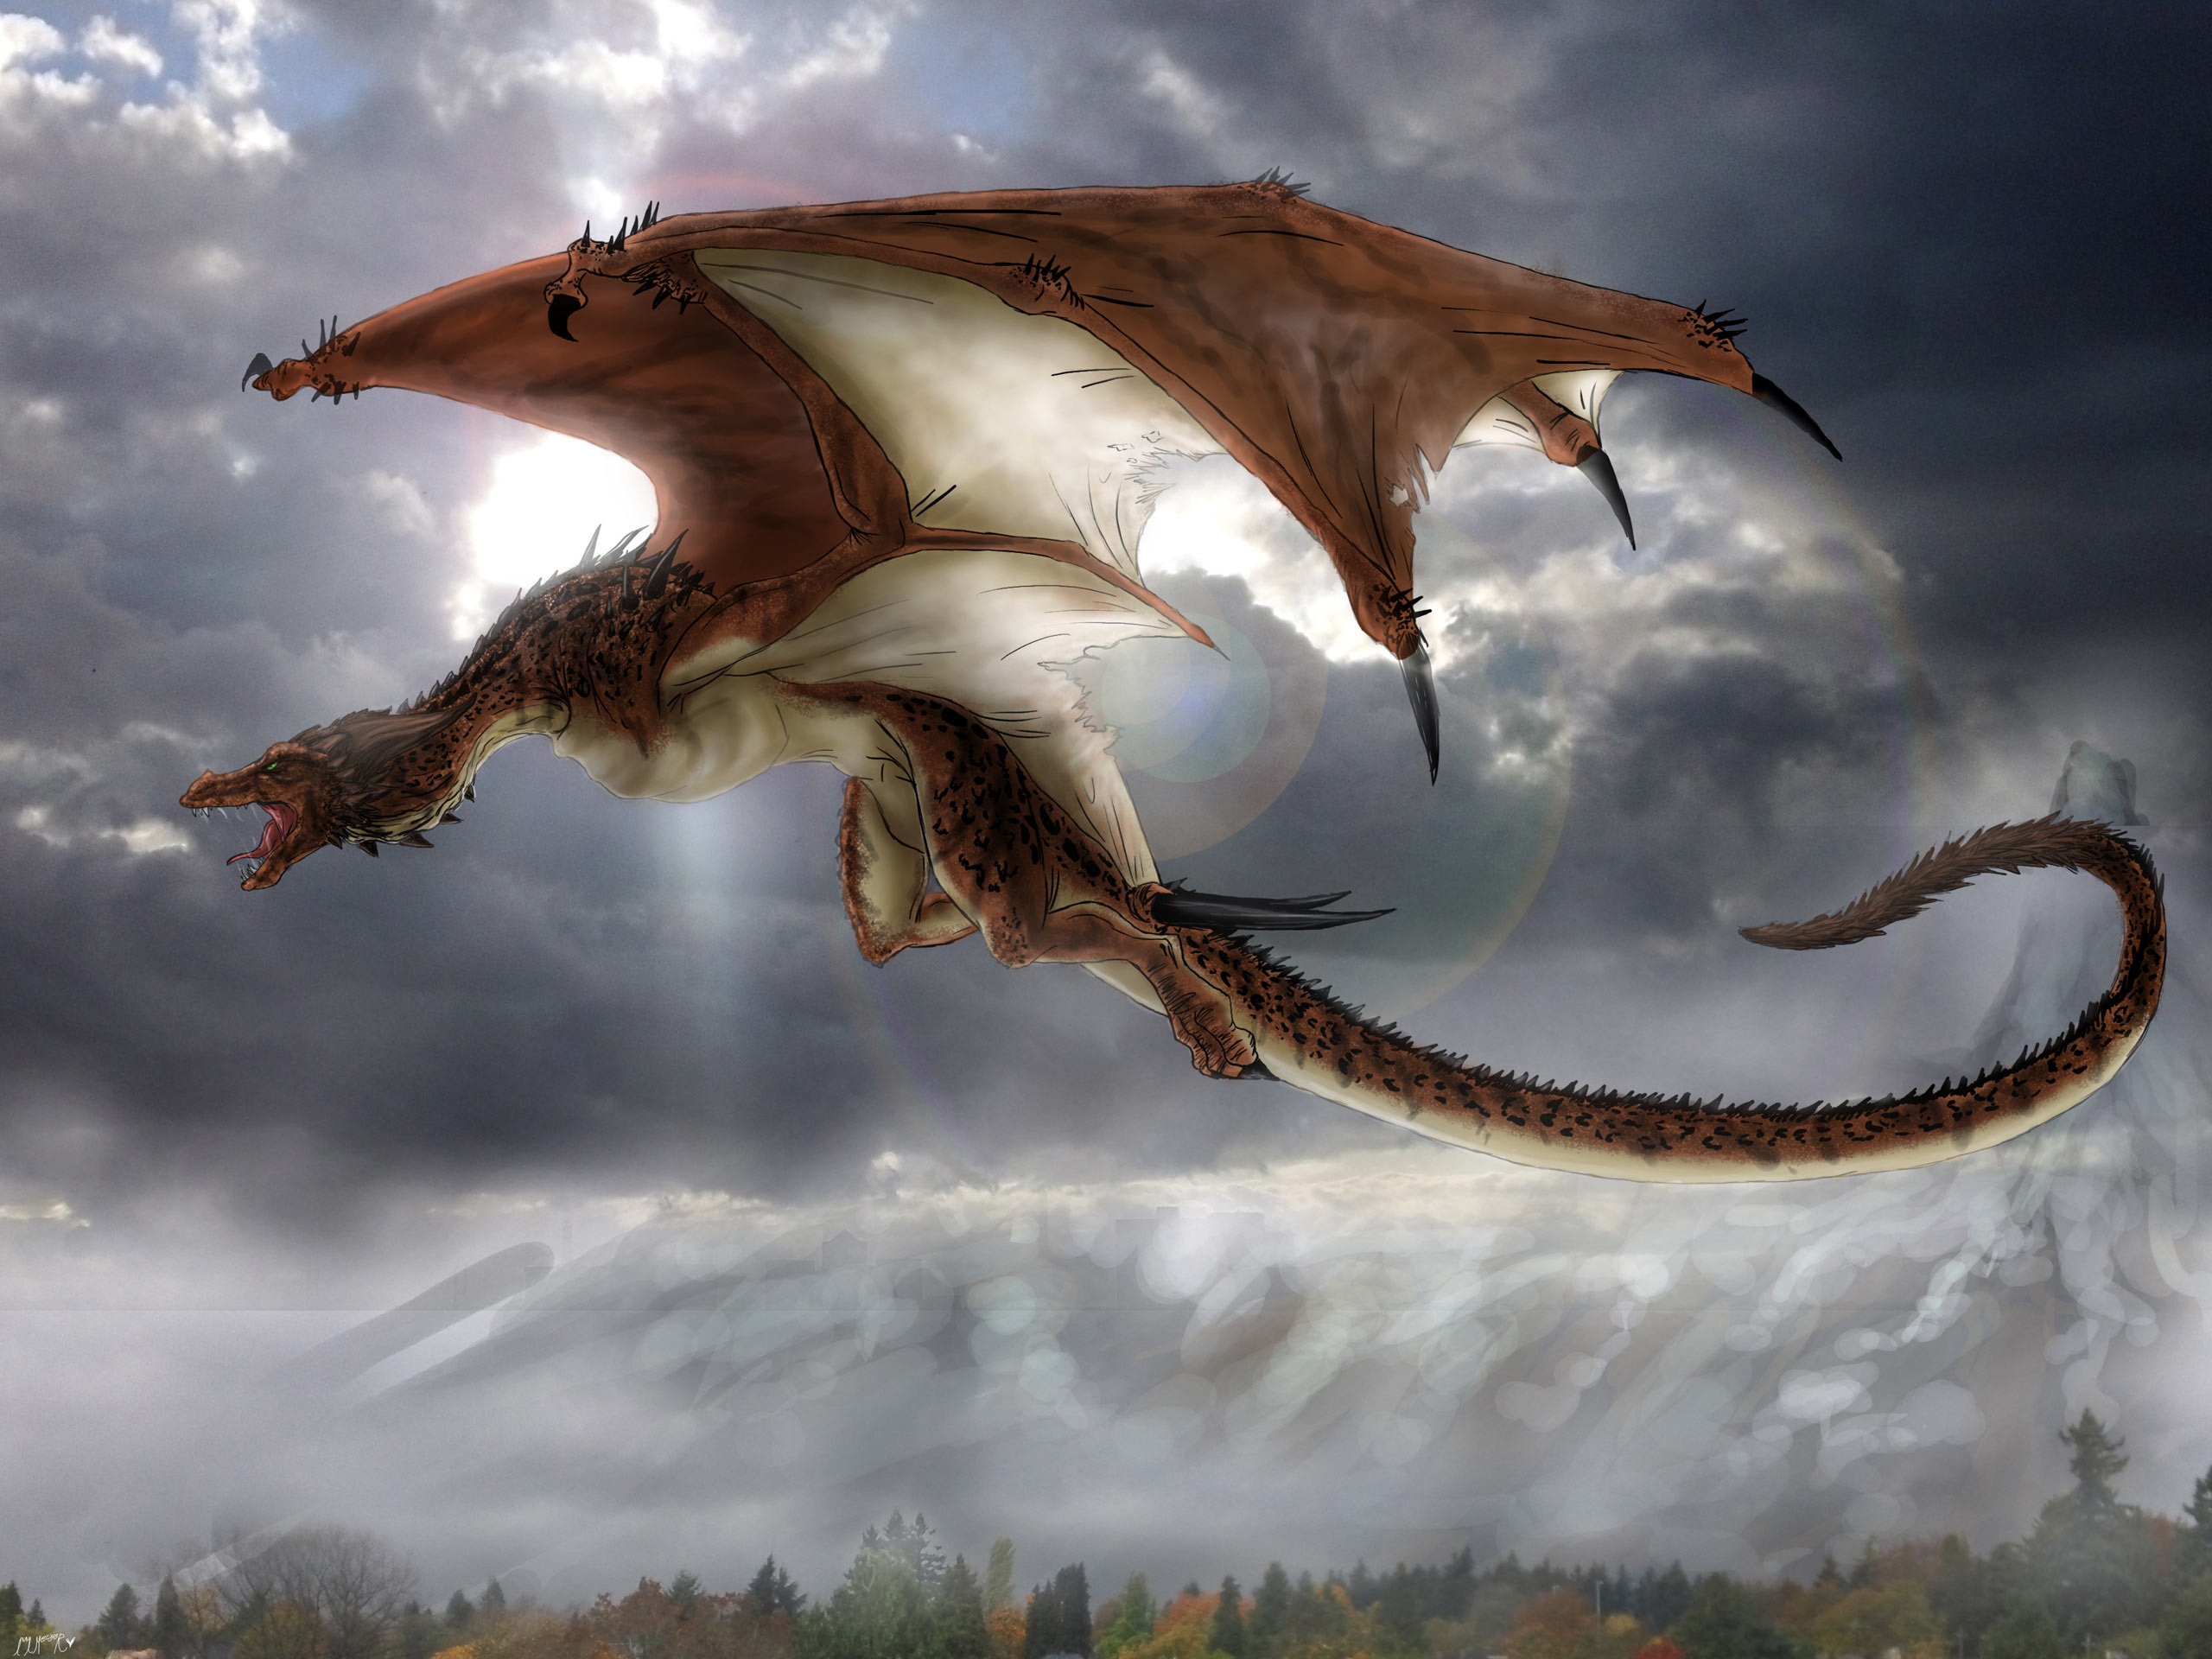 Wallpapers   Mountain Dragon Flying 2560x1920 wallpaper 2560x1920